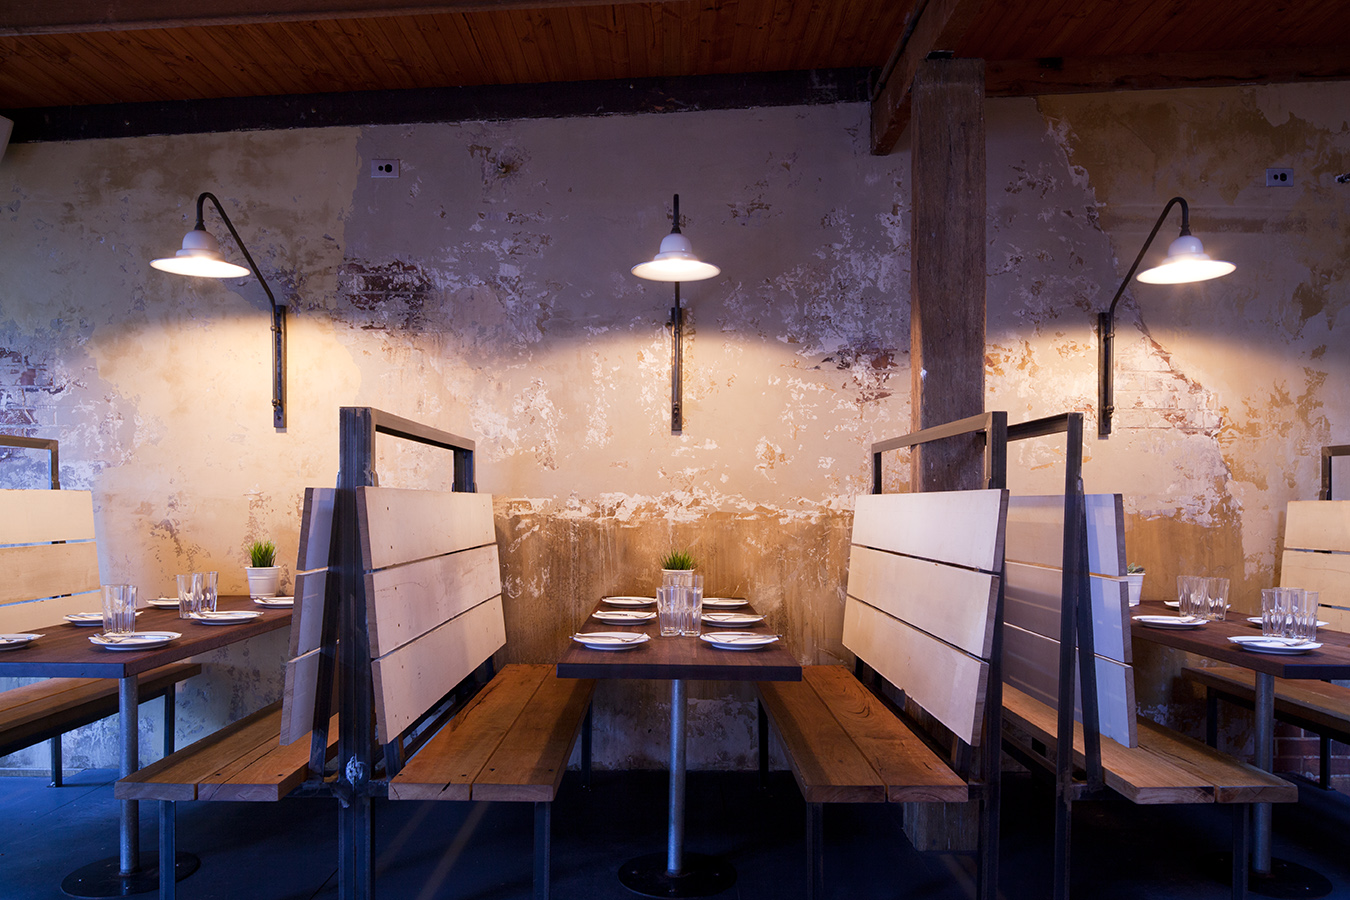 BARRIO CHINO RESTAURANT FOR MANDY EDGE DESIGN